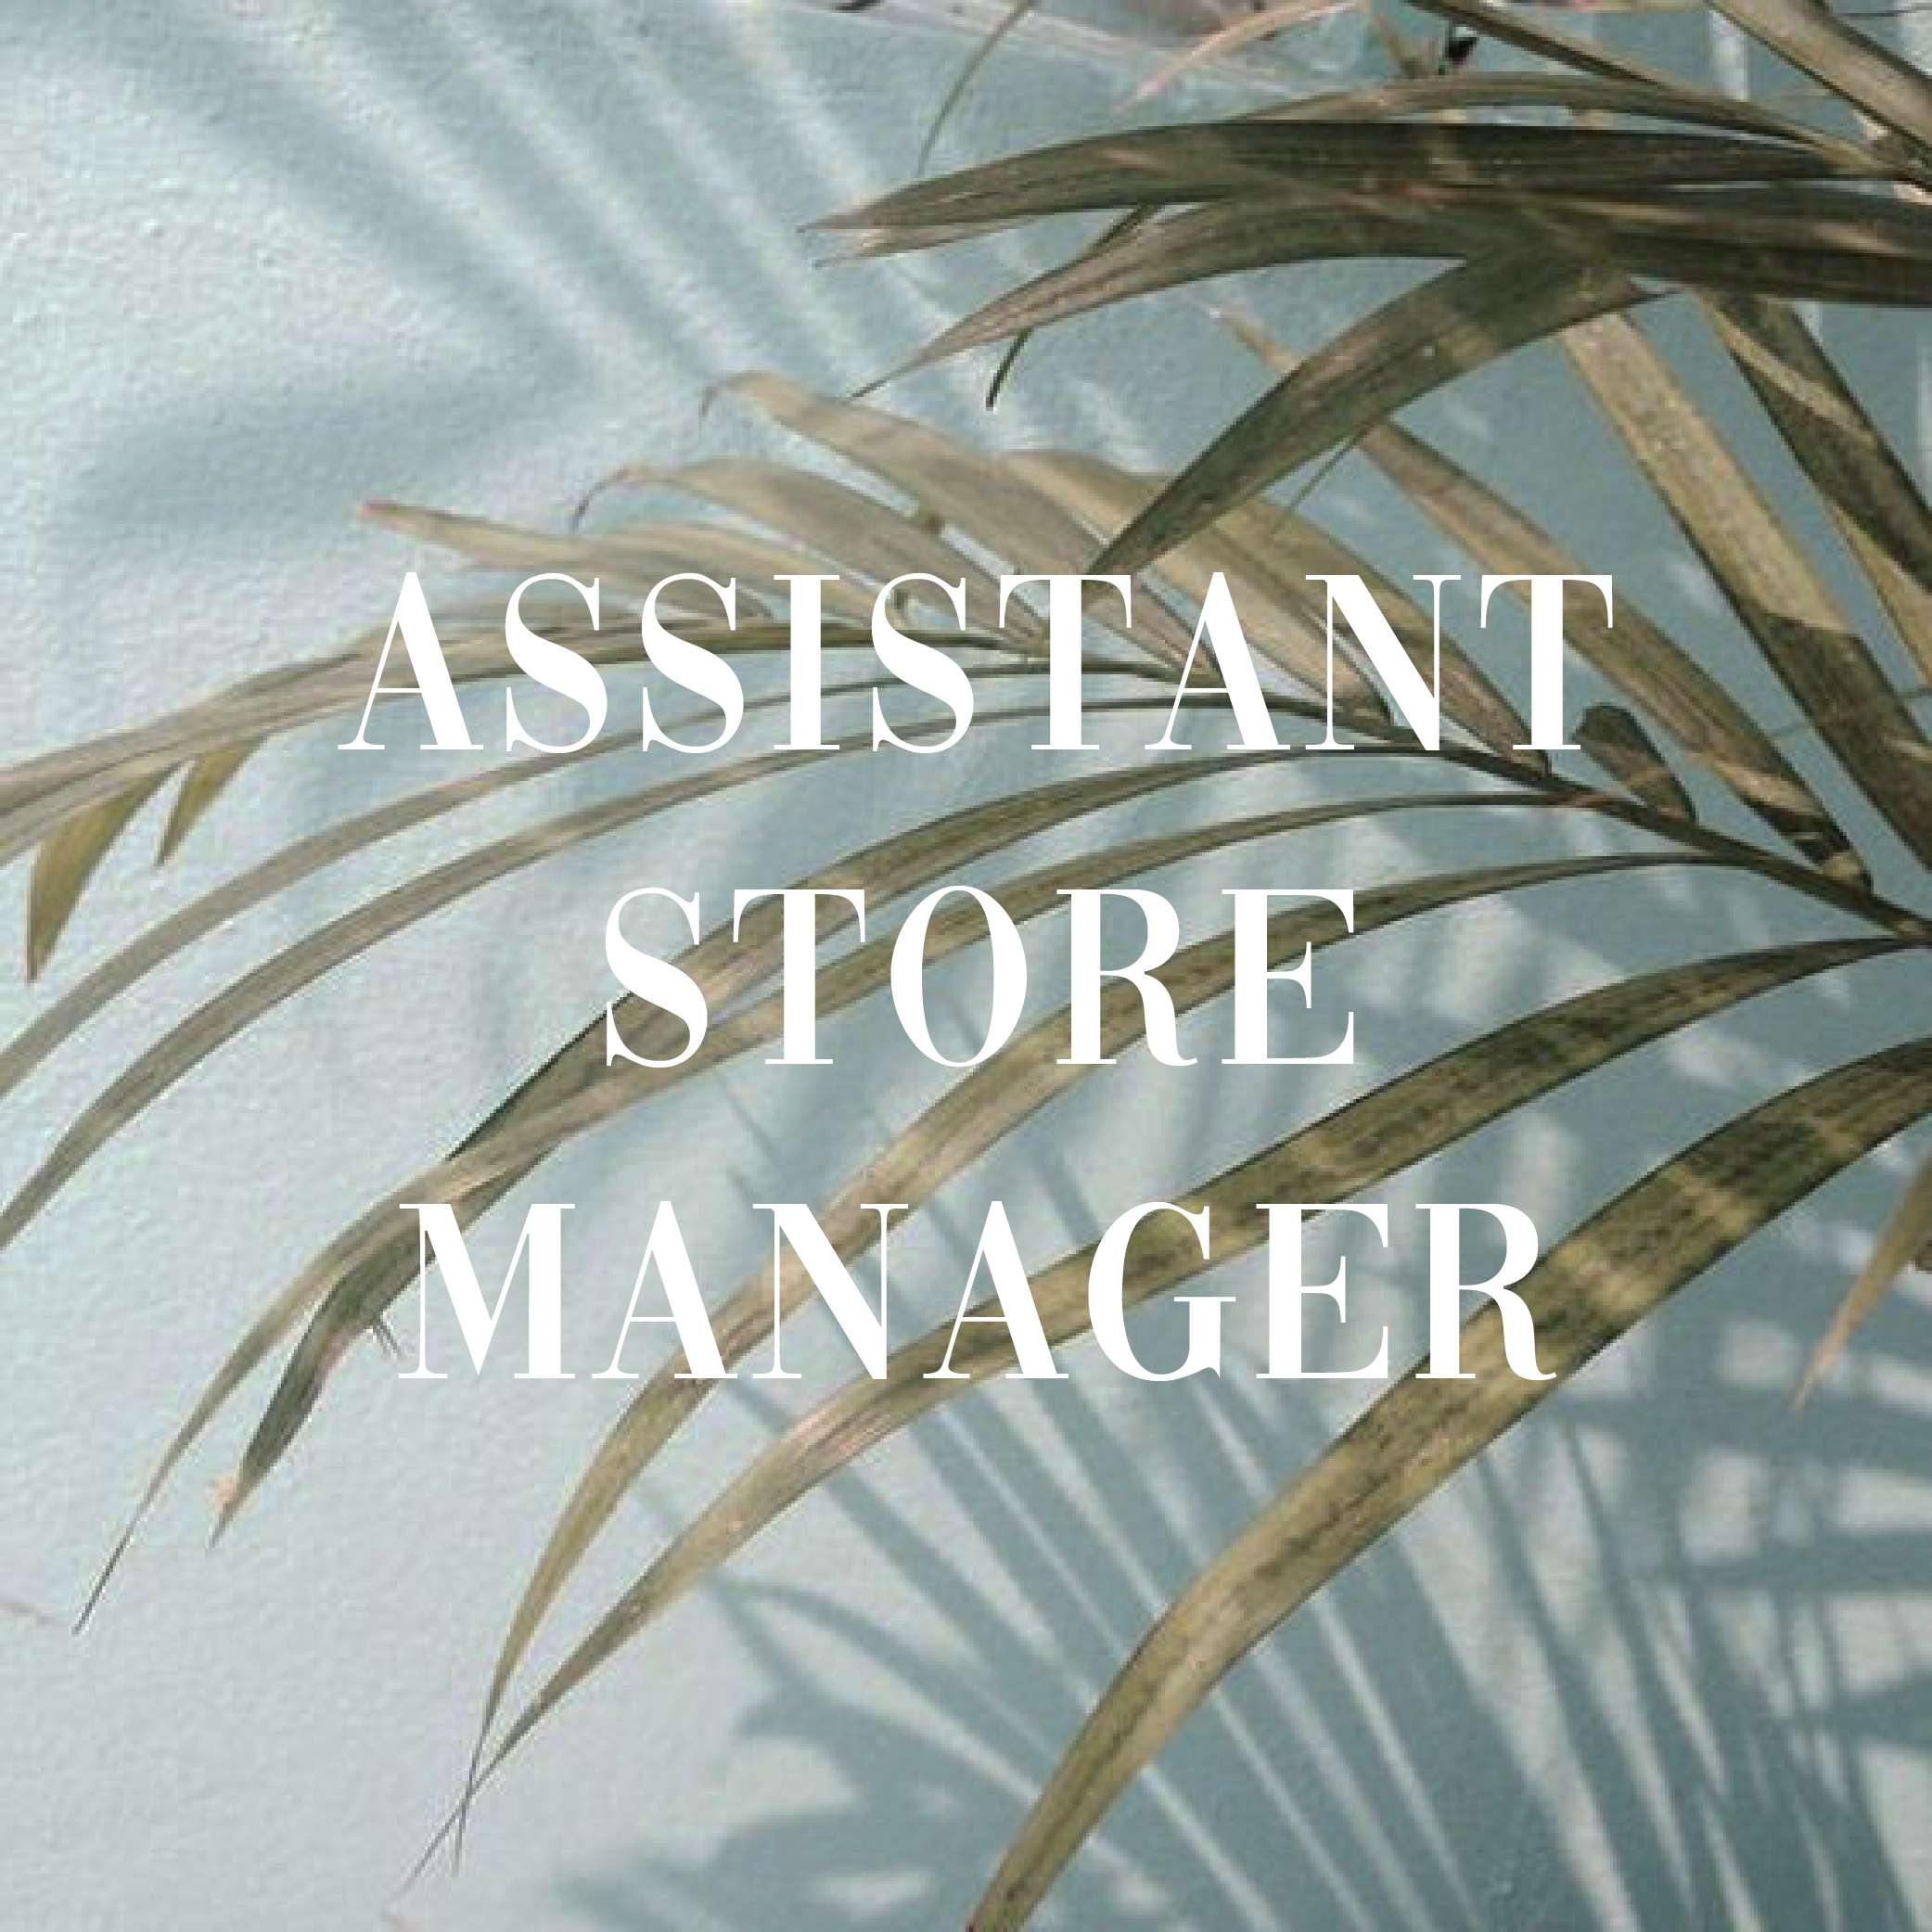 AssistantStoreManagerIcon.jpg